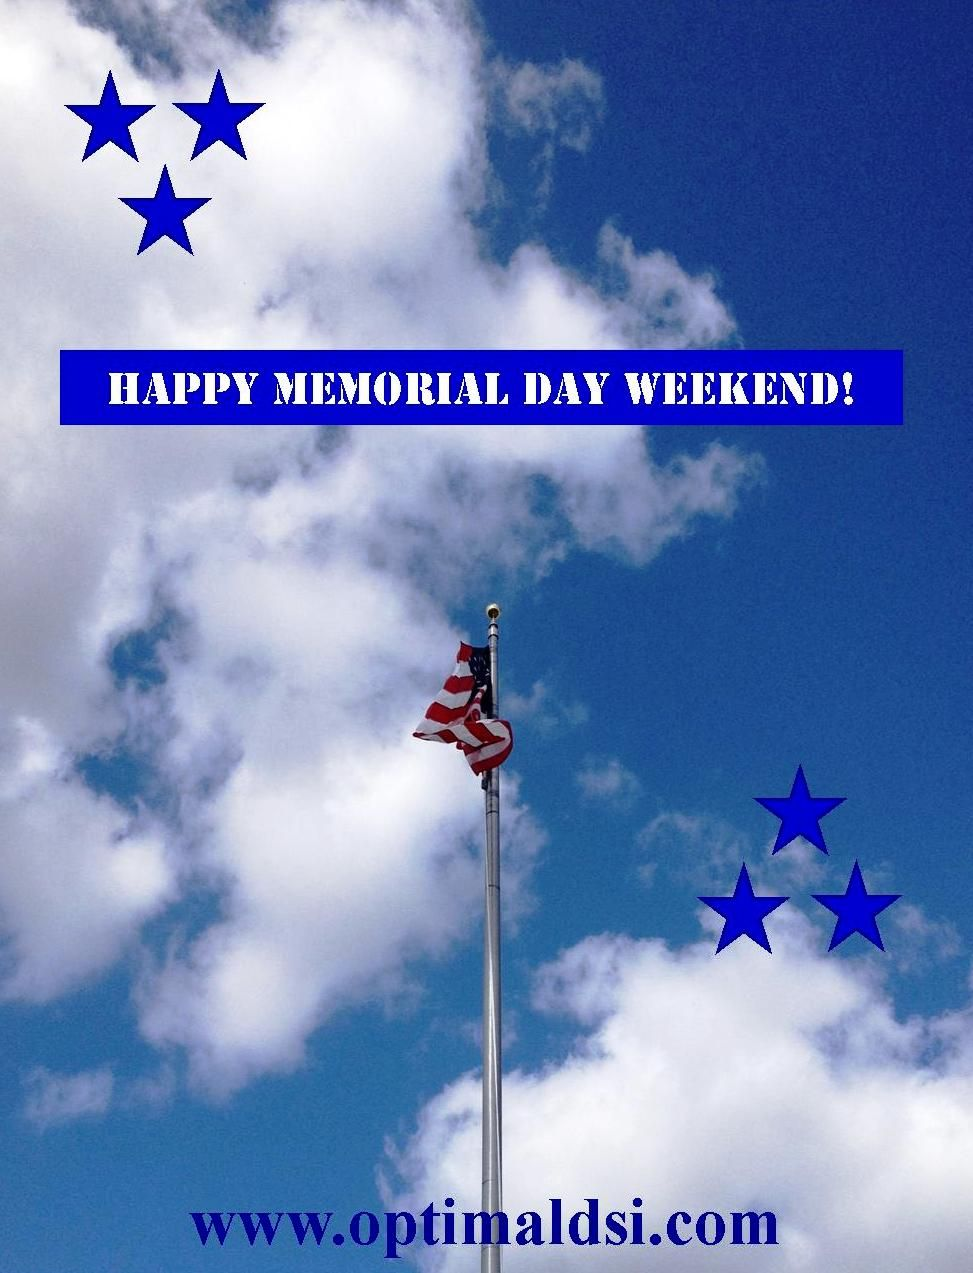 ODSI Facebook post on Memorial Day 2014